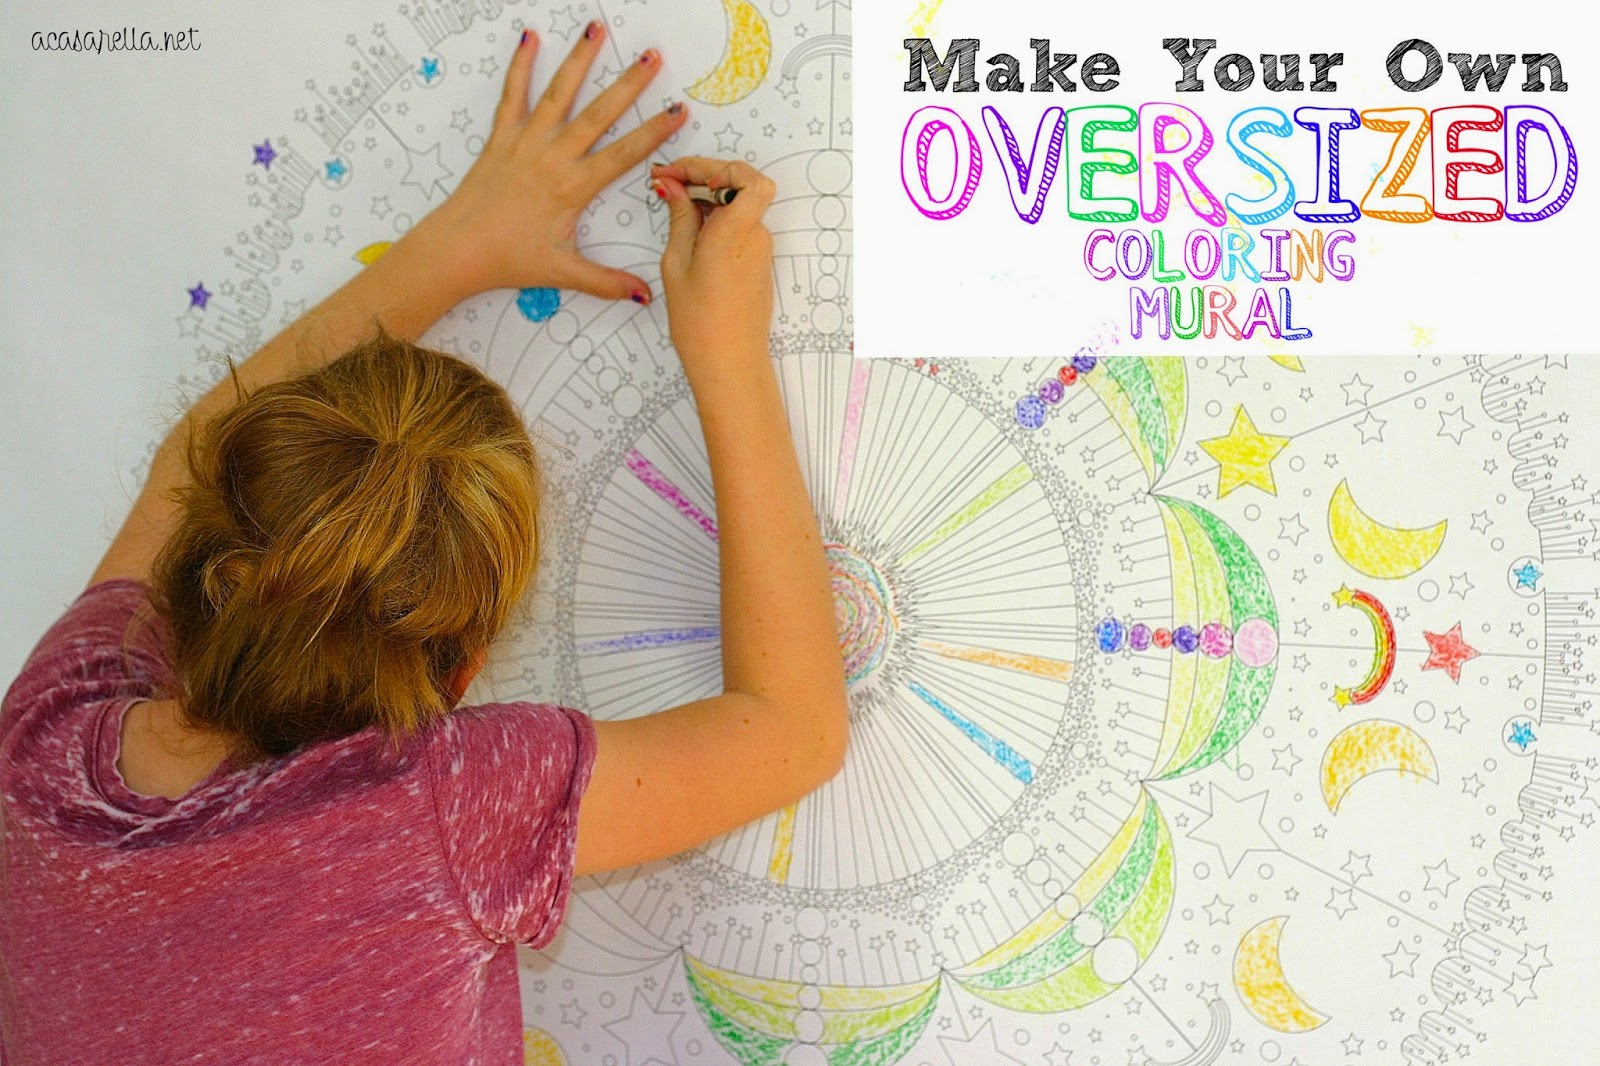 DIY Oversized Coloring Mural Part 93